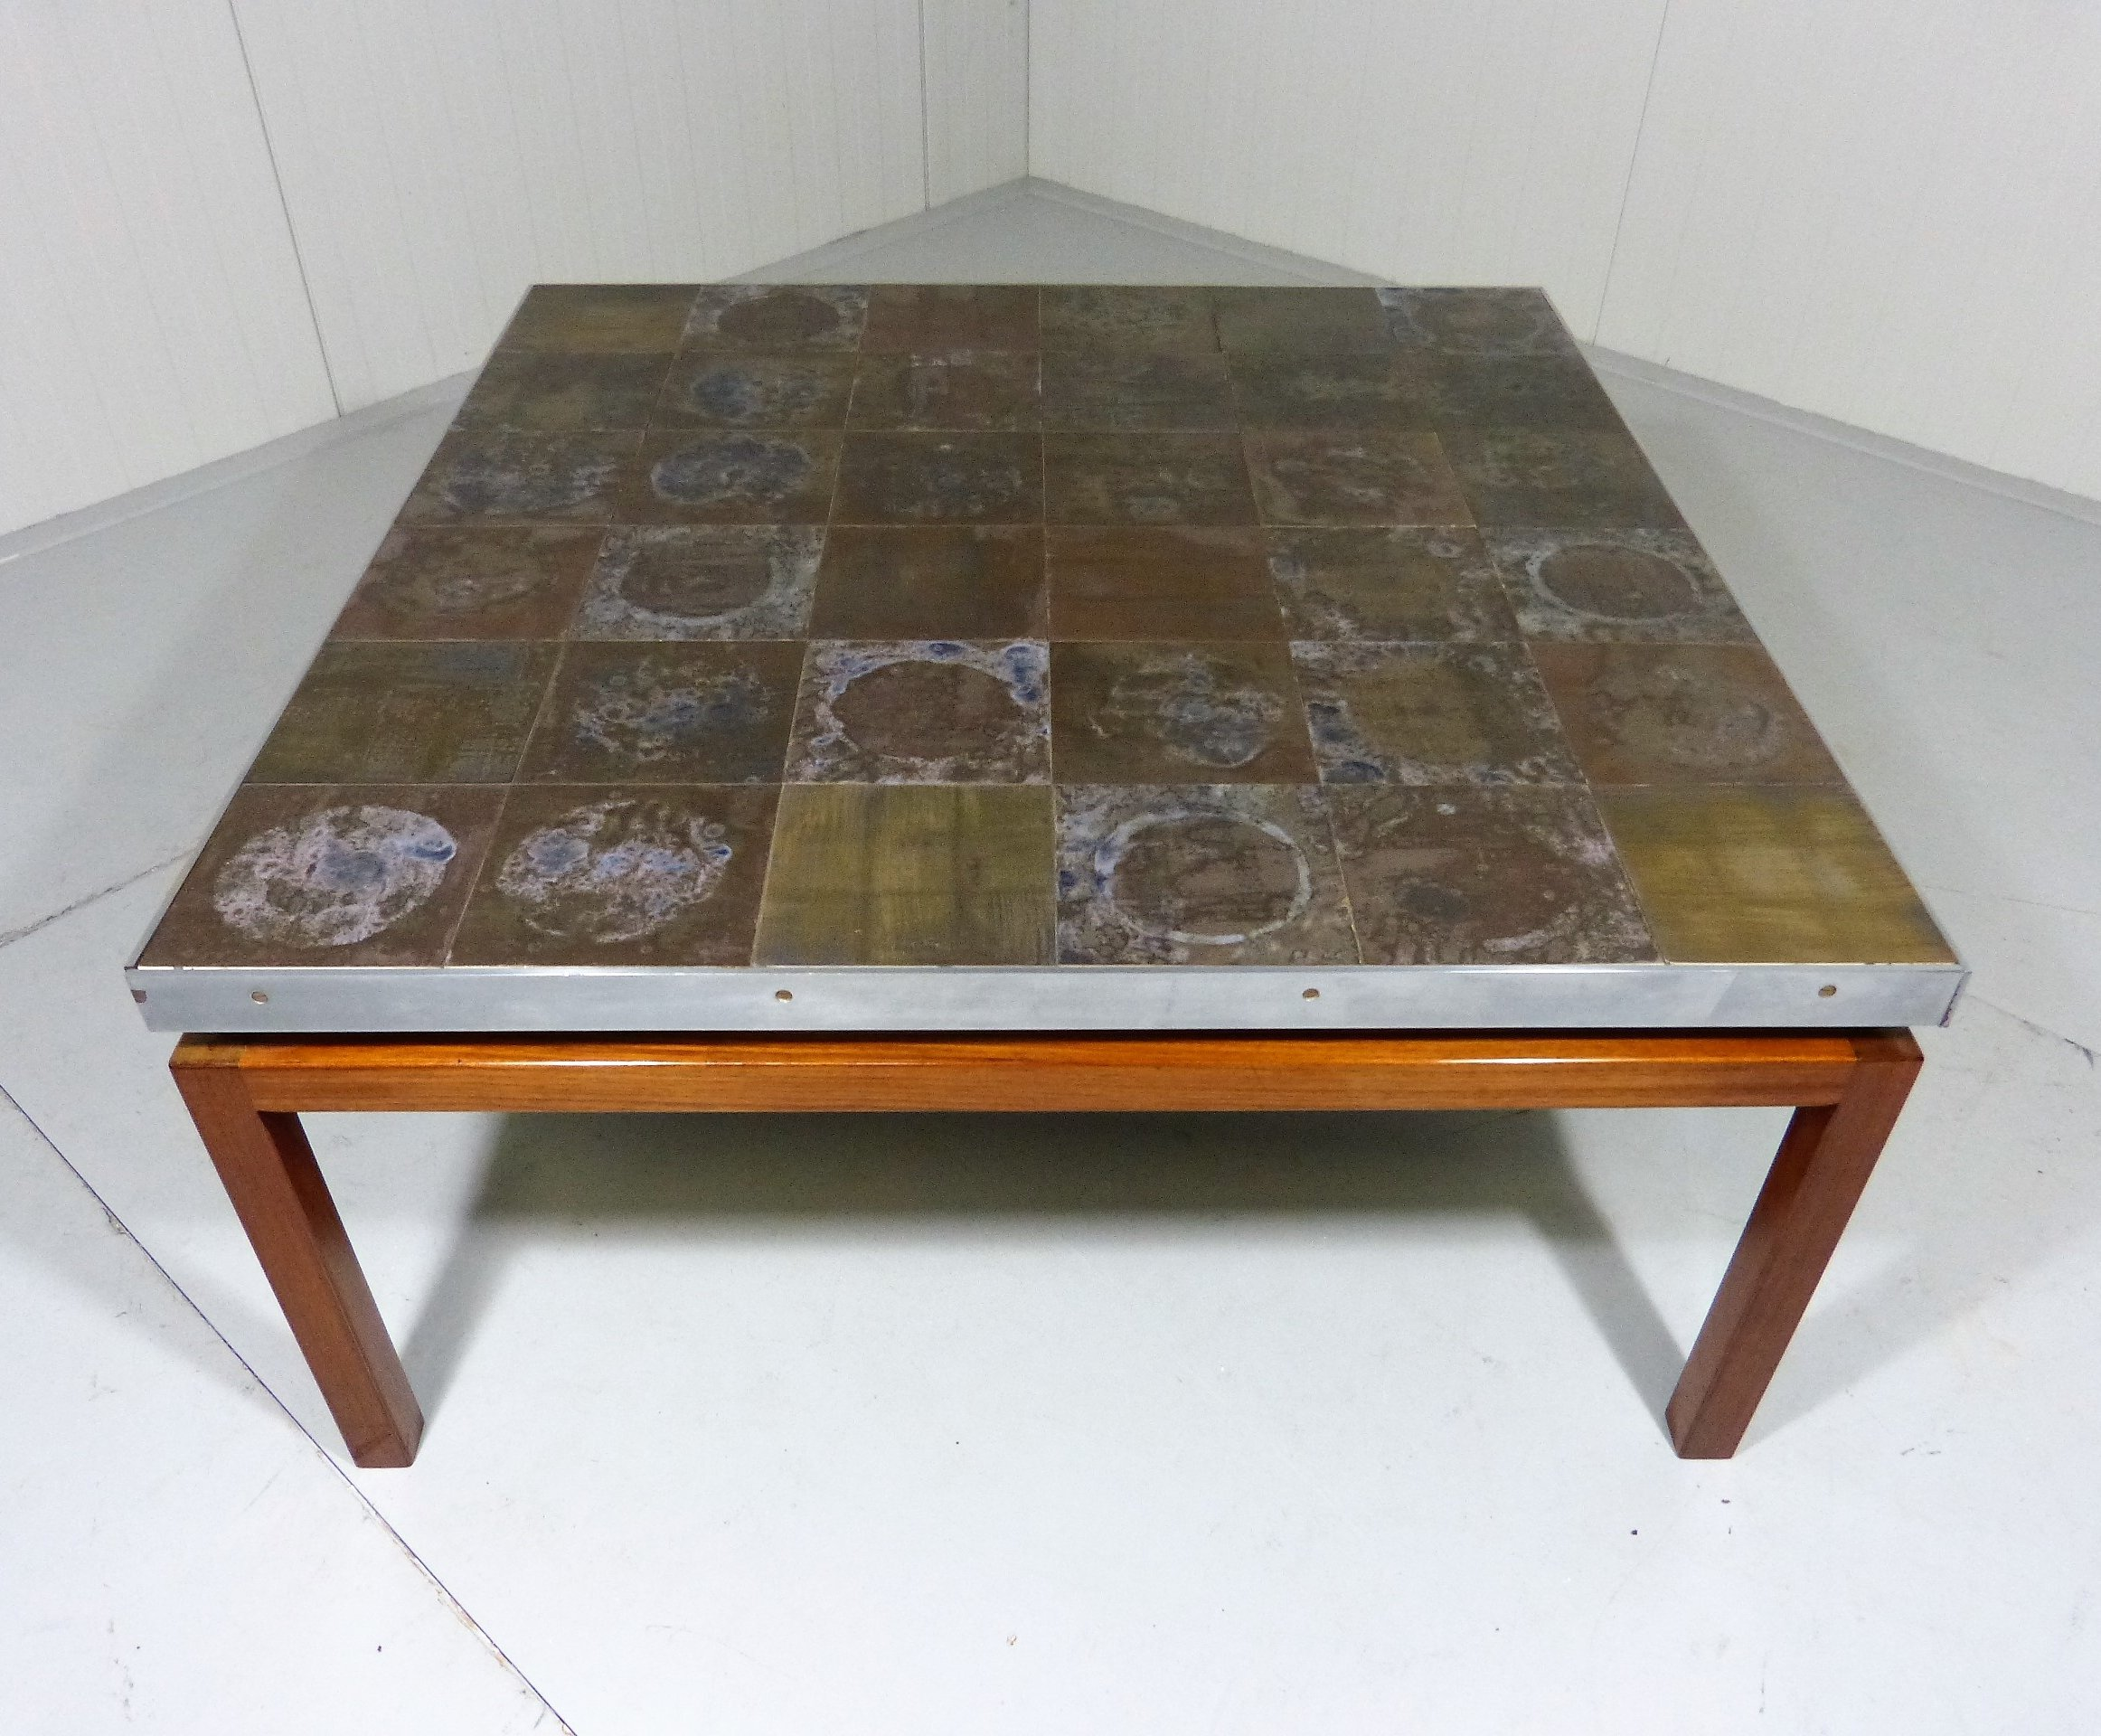 1960 S Big Square Coffee Table With Inlayed Pottery Tiles Top 76741